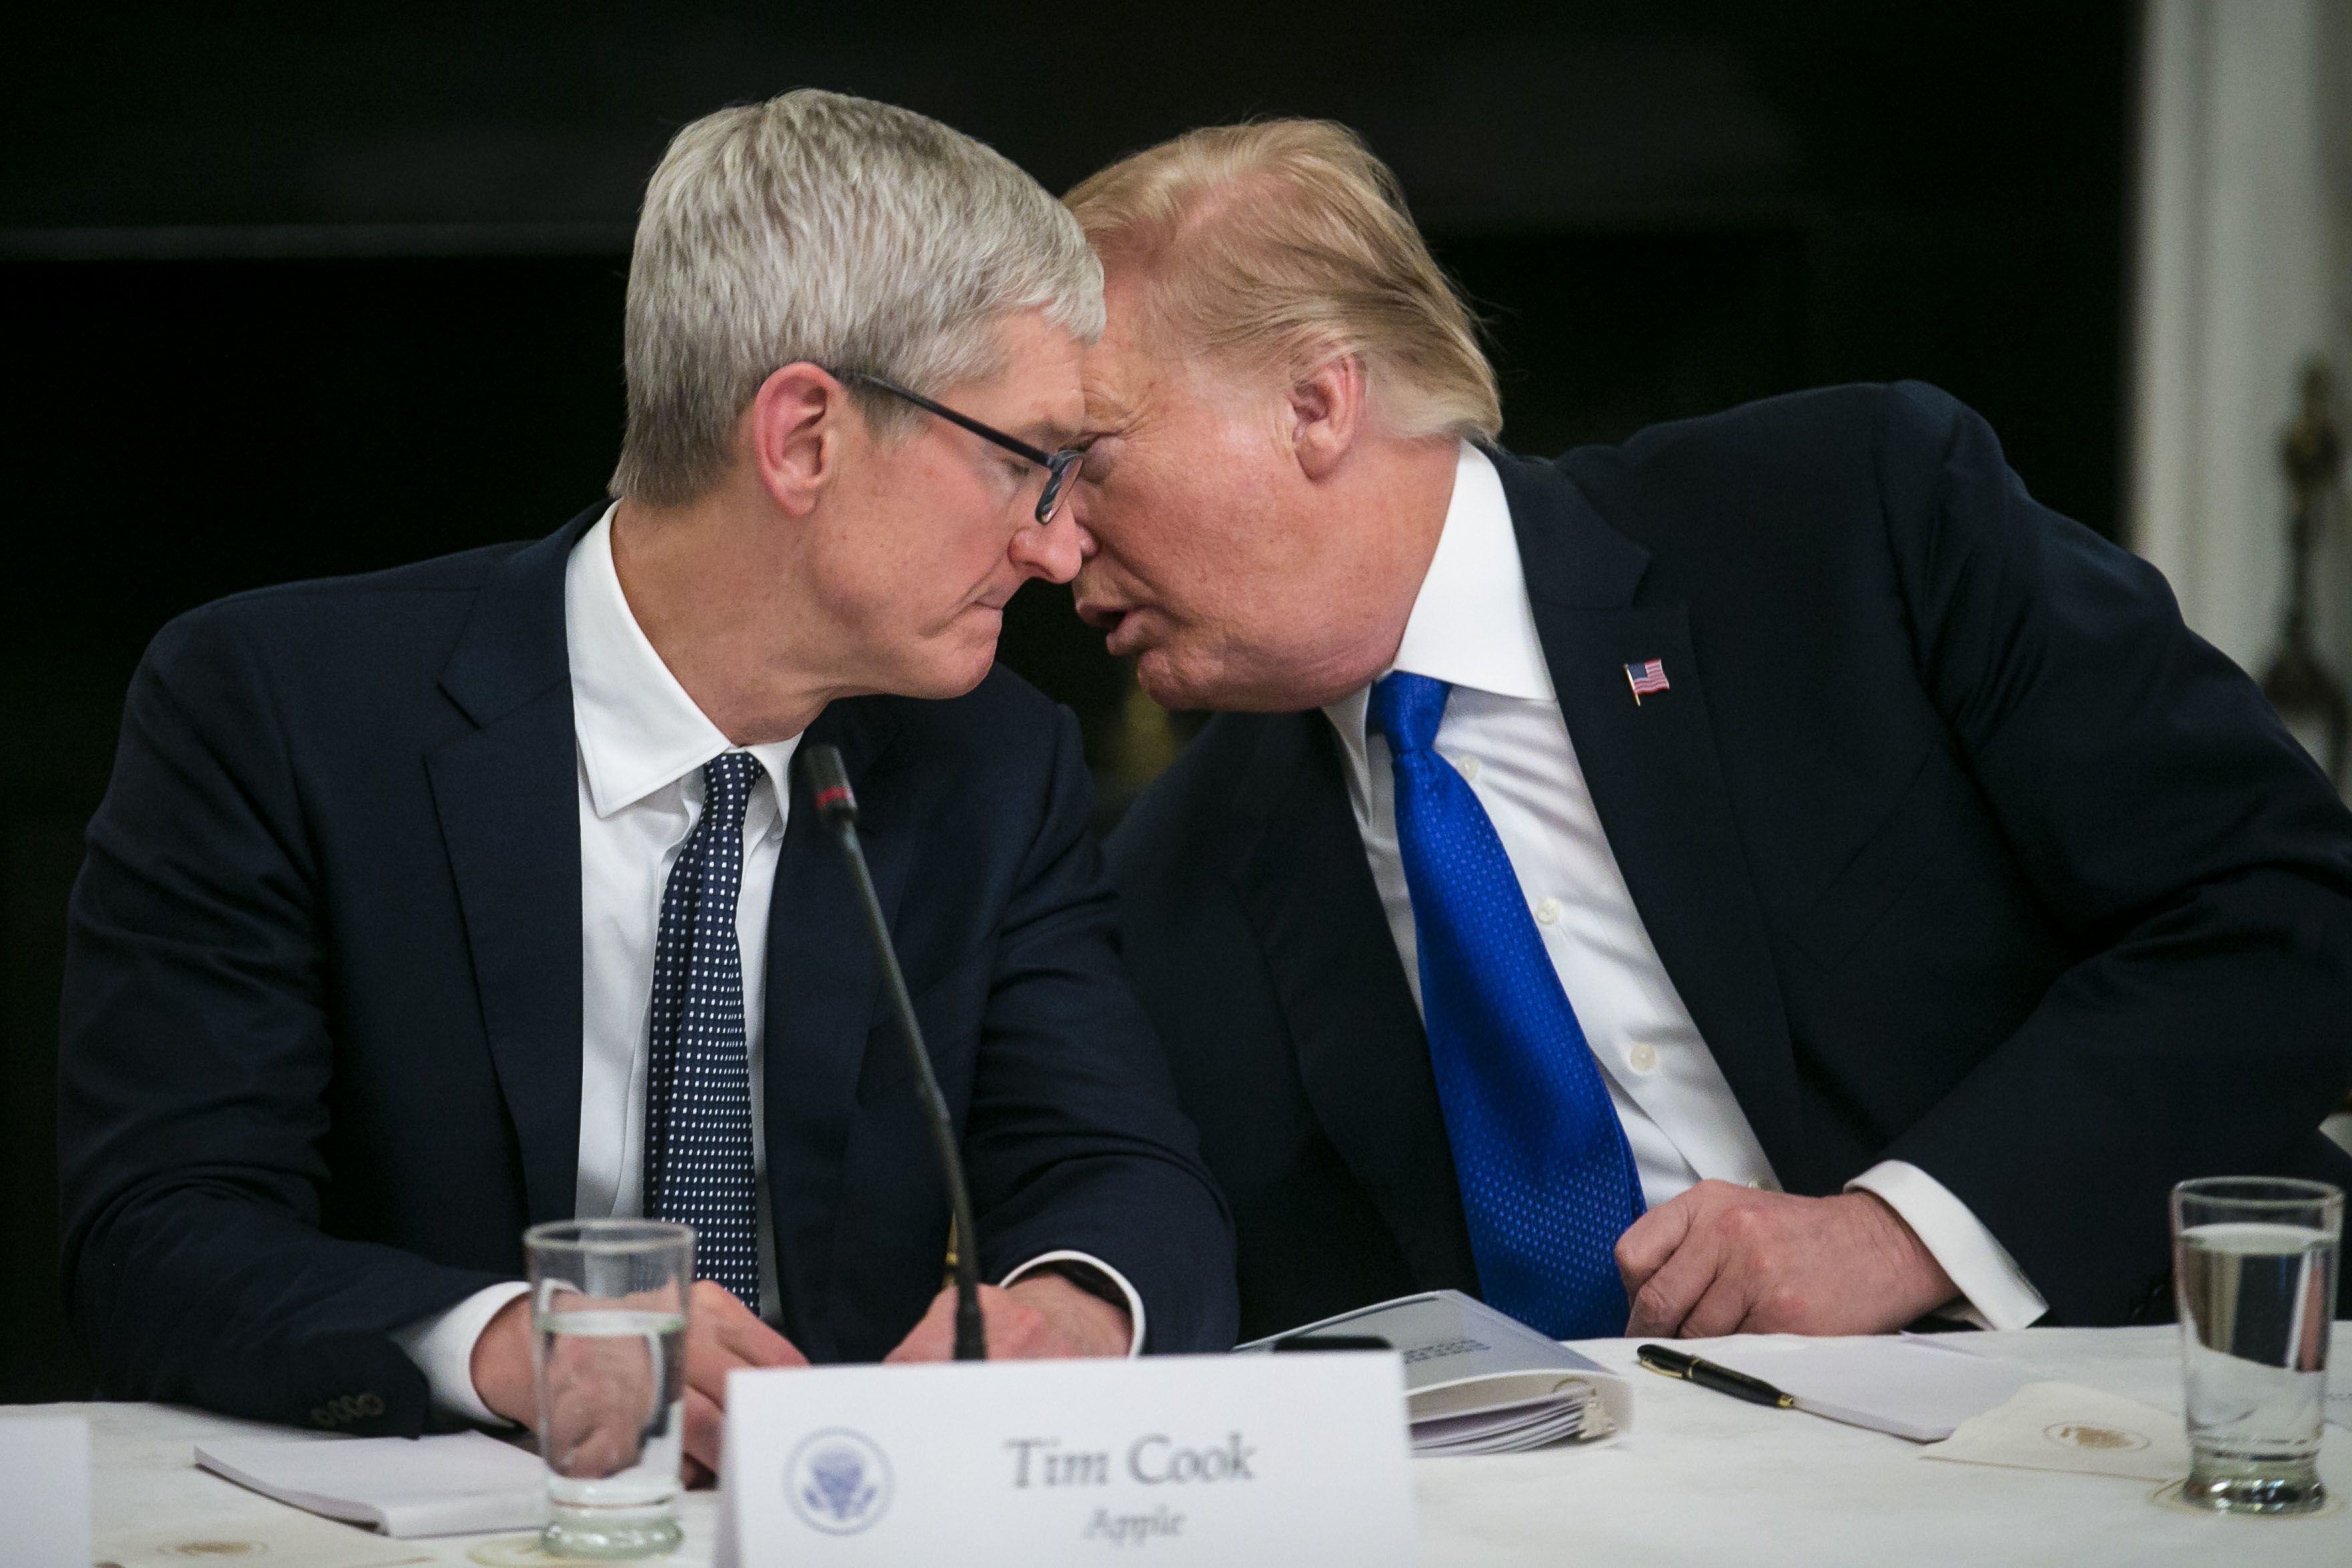 Trump having dinner with Apple CEO Tim Cook